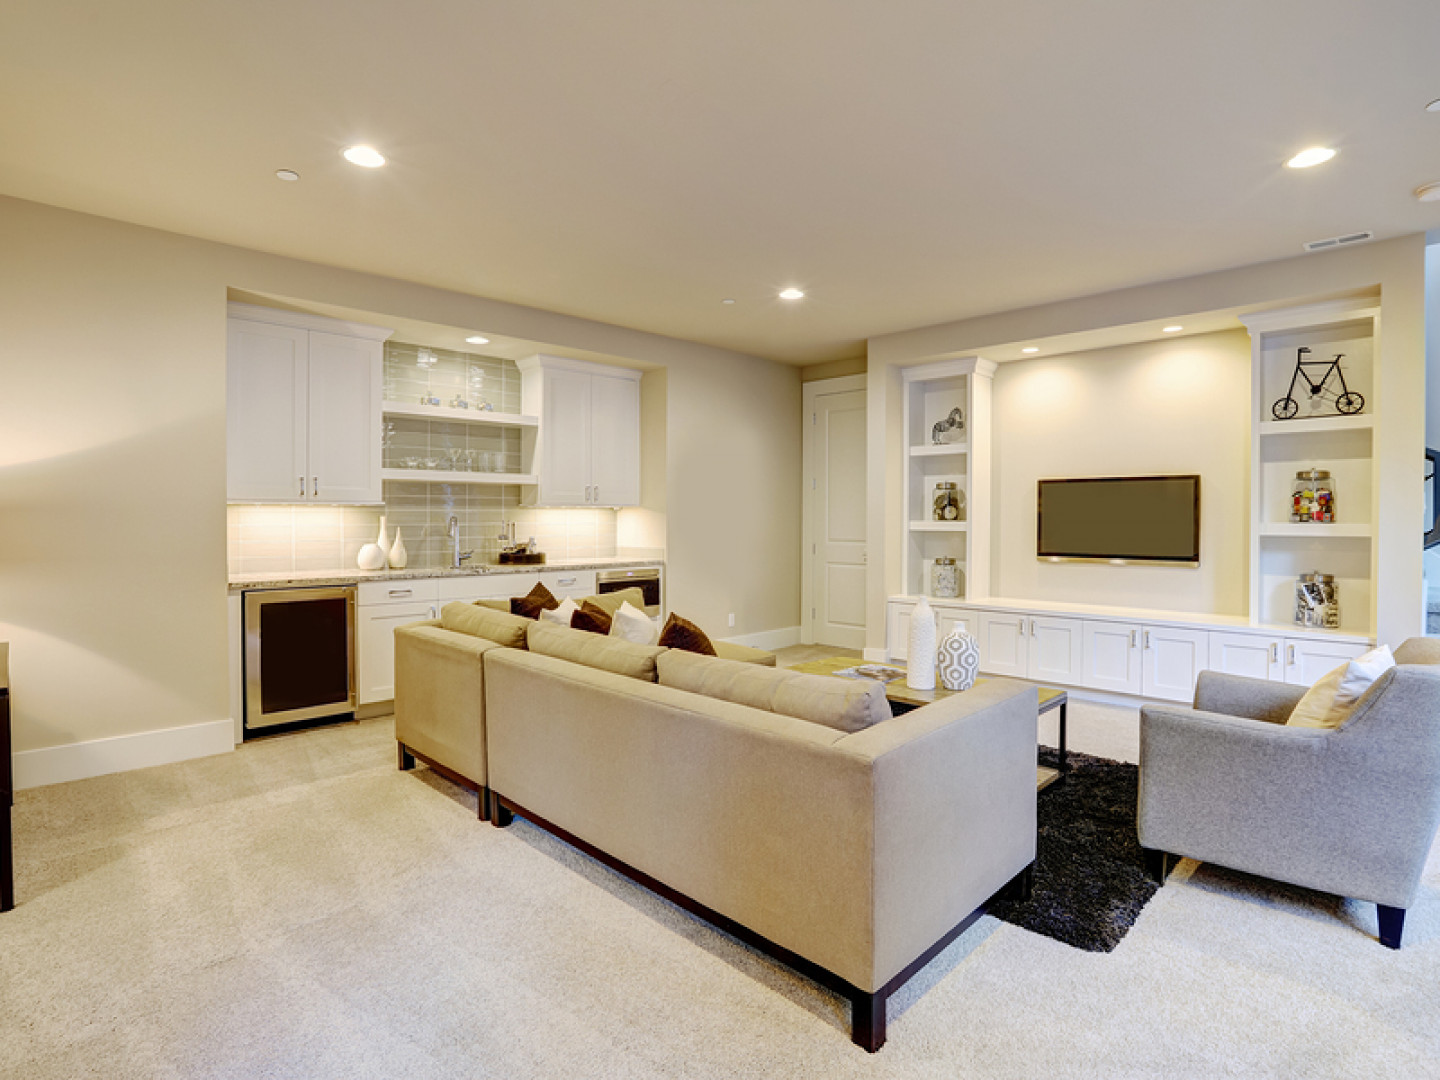 ALLIED CONSTRUCTION CORPORATION: LONG ISLAND BASEMENT REMODELING